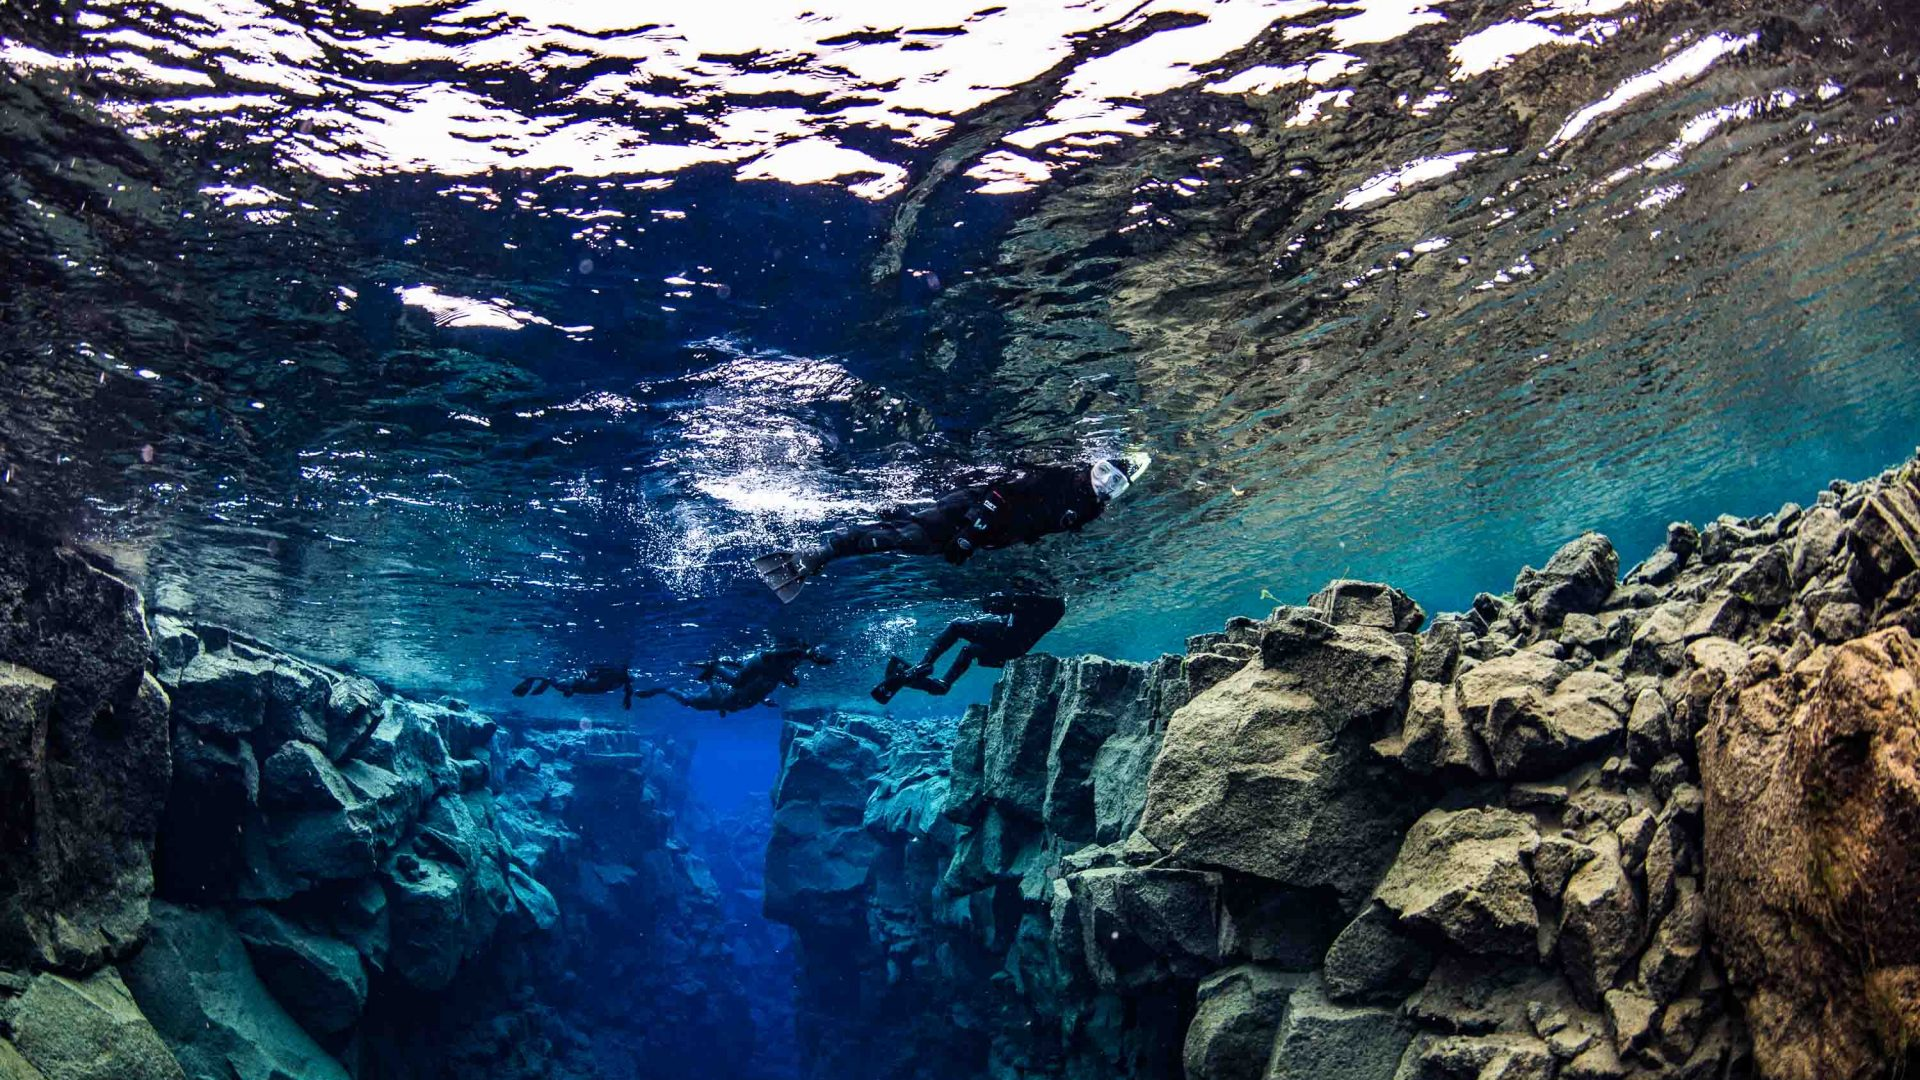 The surreal feeling of snorkeling in a gap between two tectonic plates.